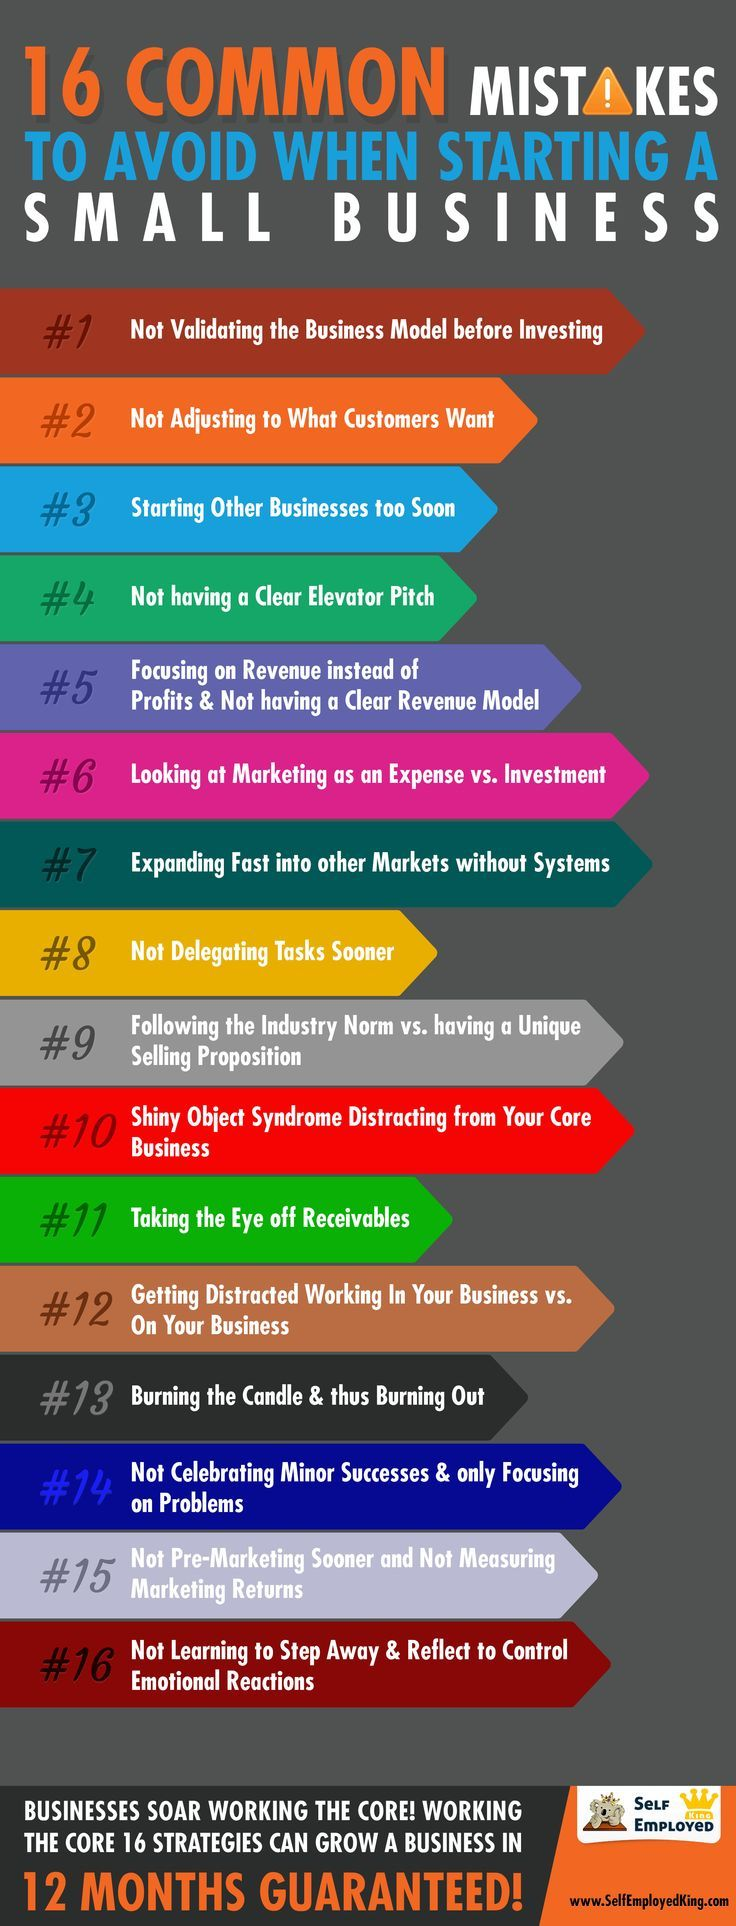 16 Common Mistakes to Avoid When Starting a Small Business from a Survey of over 100 Entrepreneurs http://www.brfinancesolutions.com #br #brfinance #brfinancesolutions